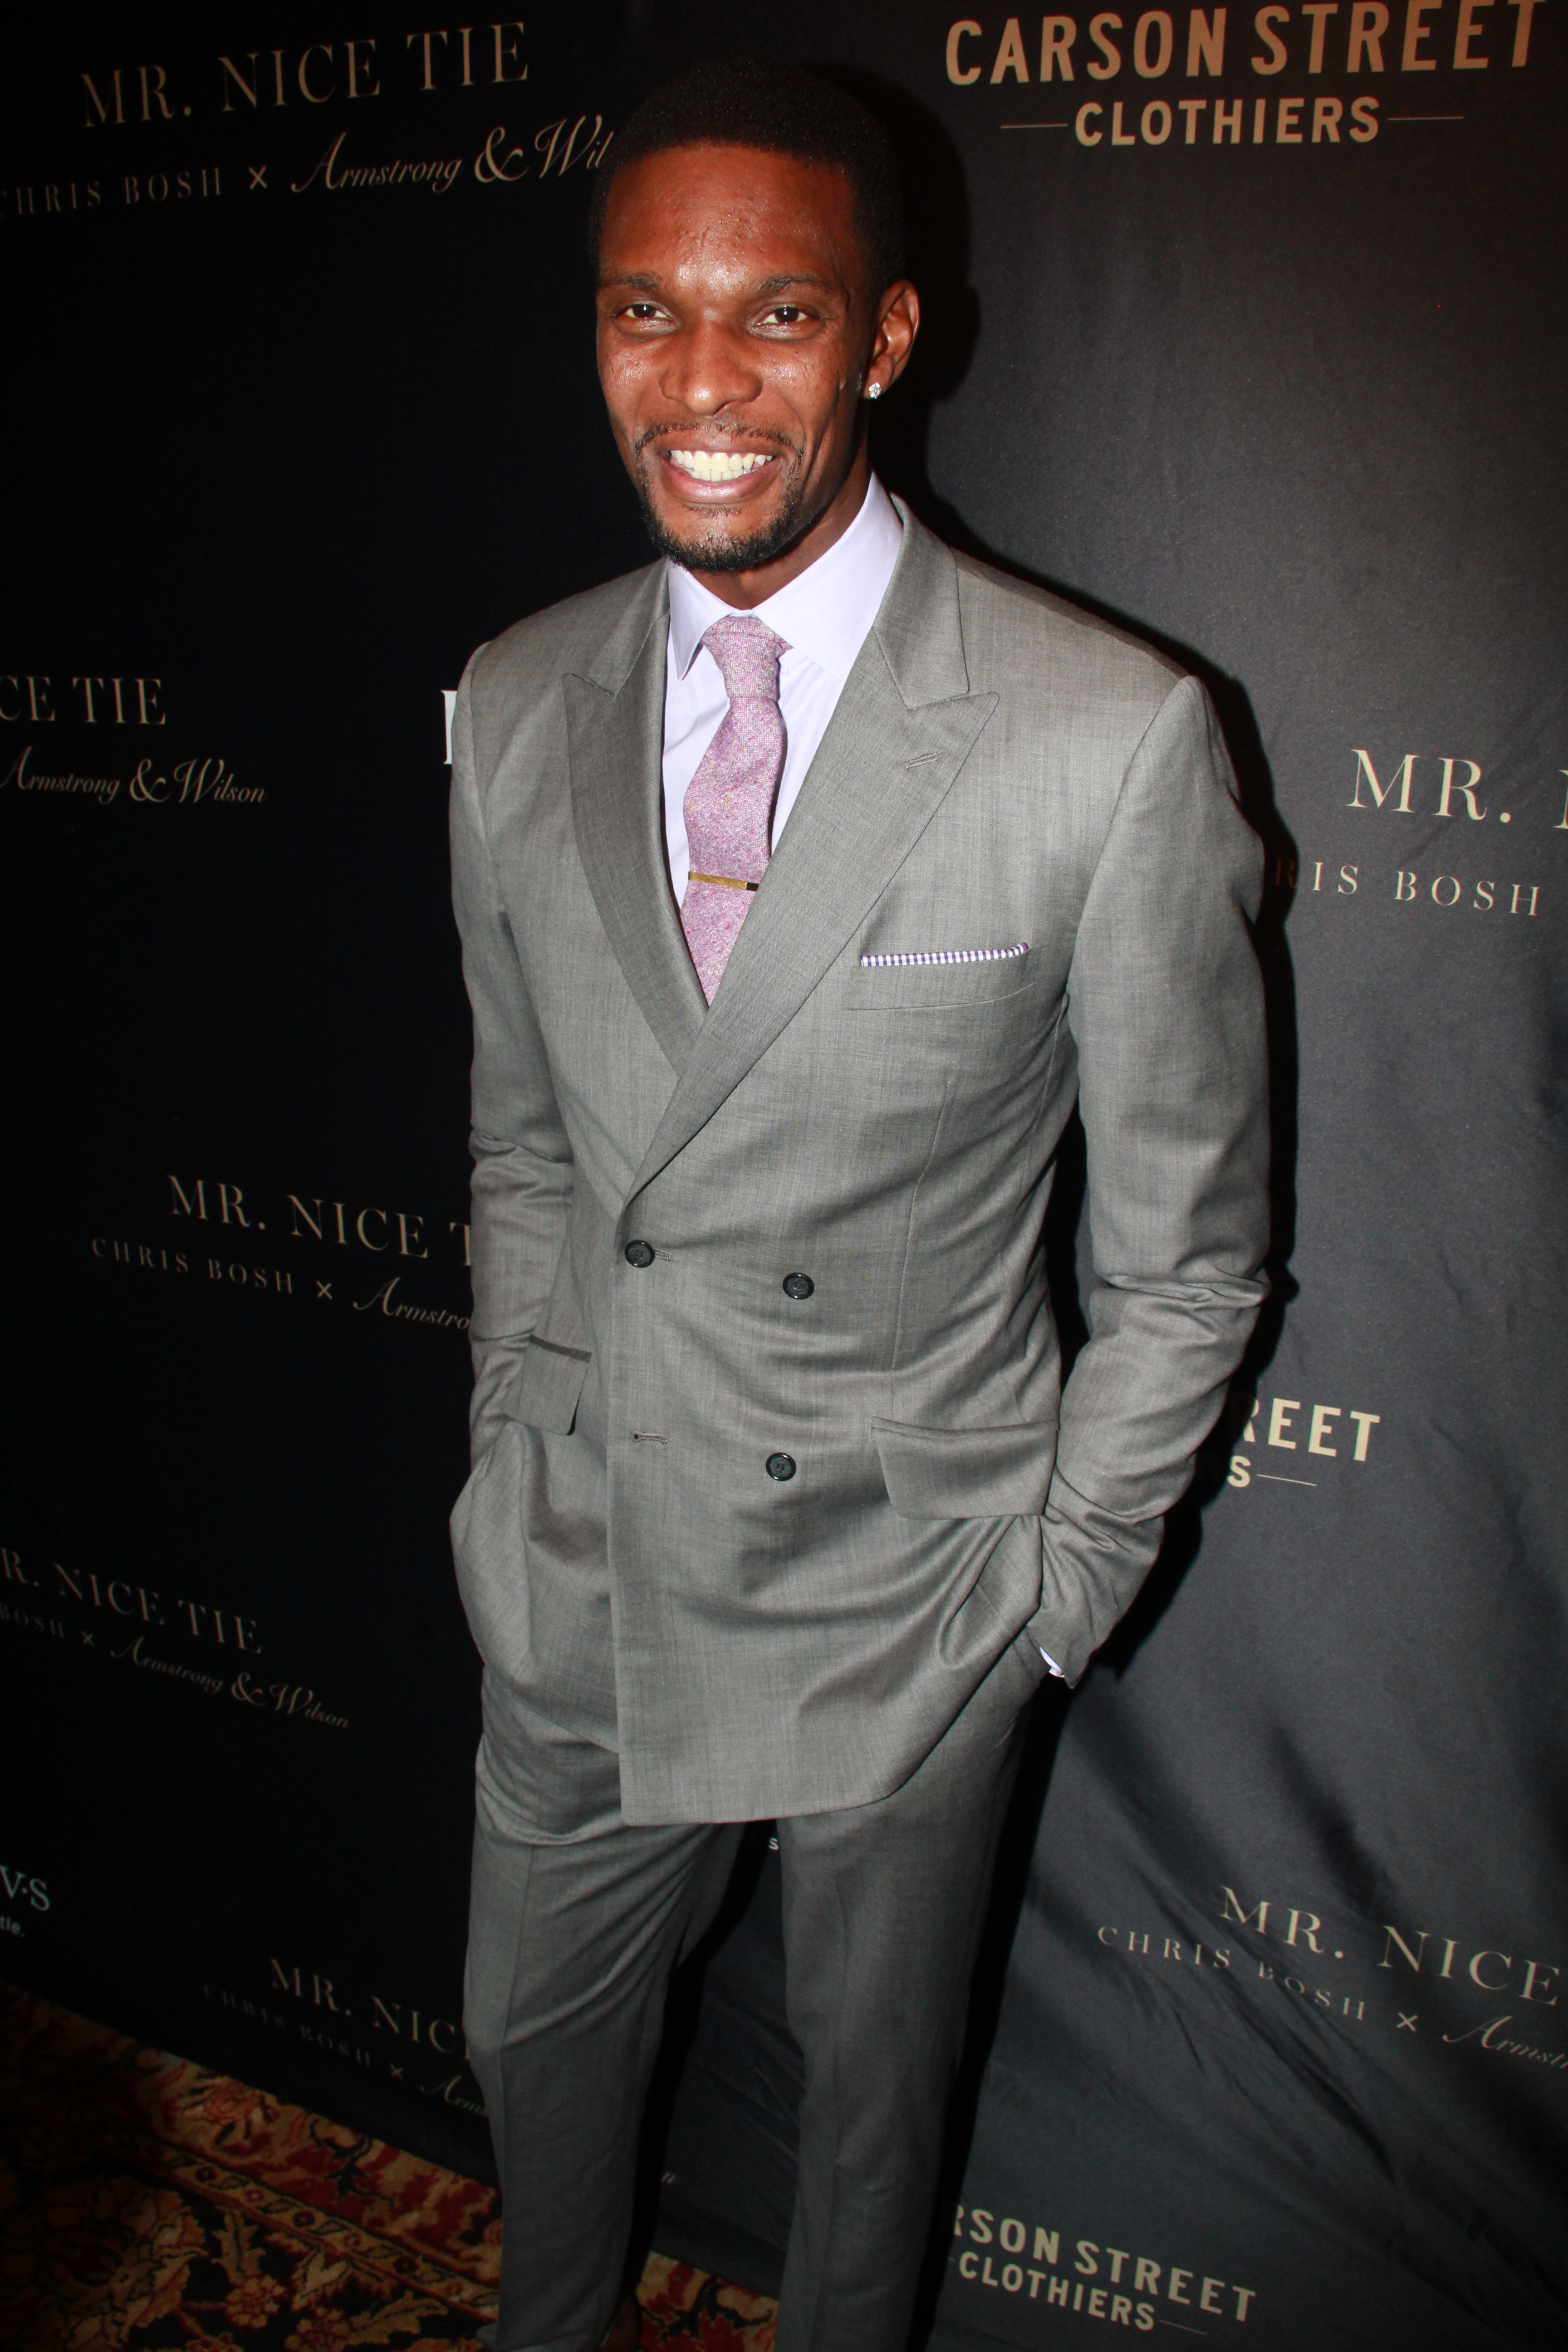 Chris-Bosh-Mr-Nice-tie-new-york-fashion-week-debut-armstrong-and-wilson-5